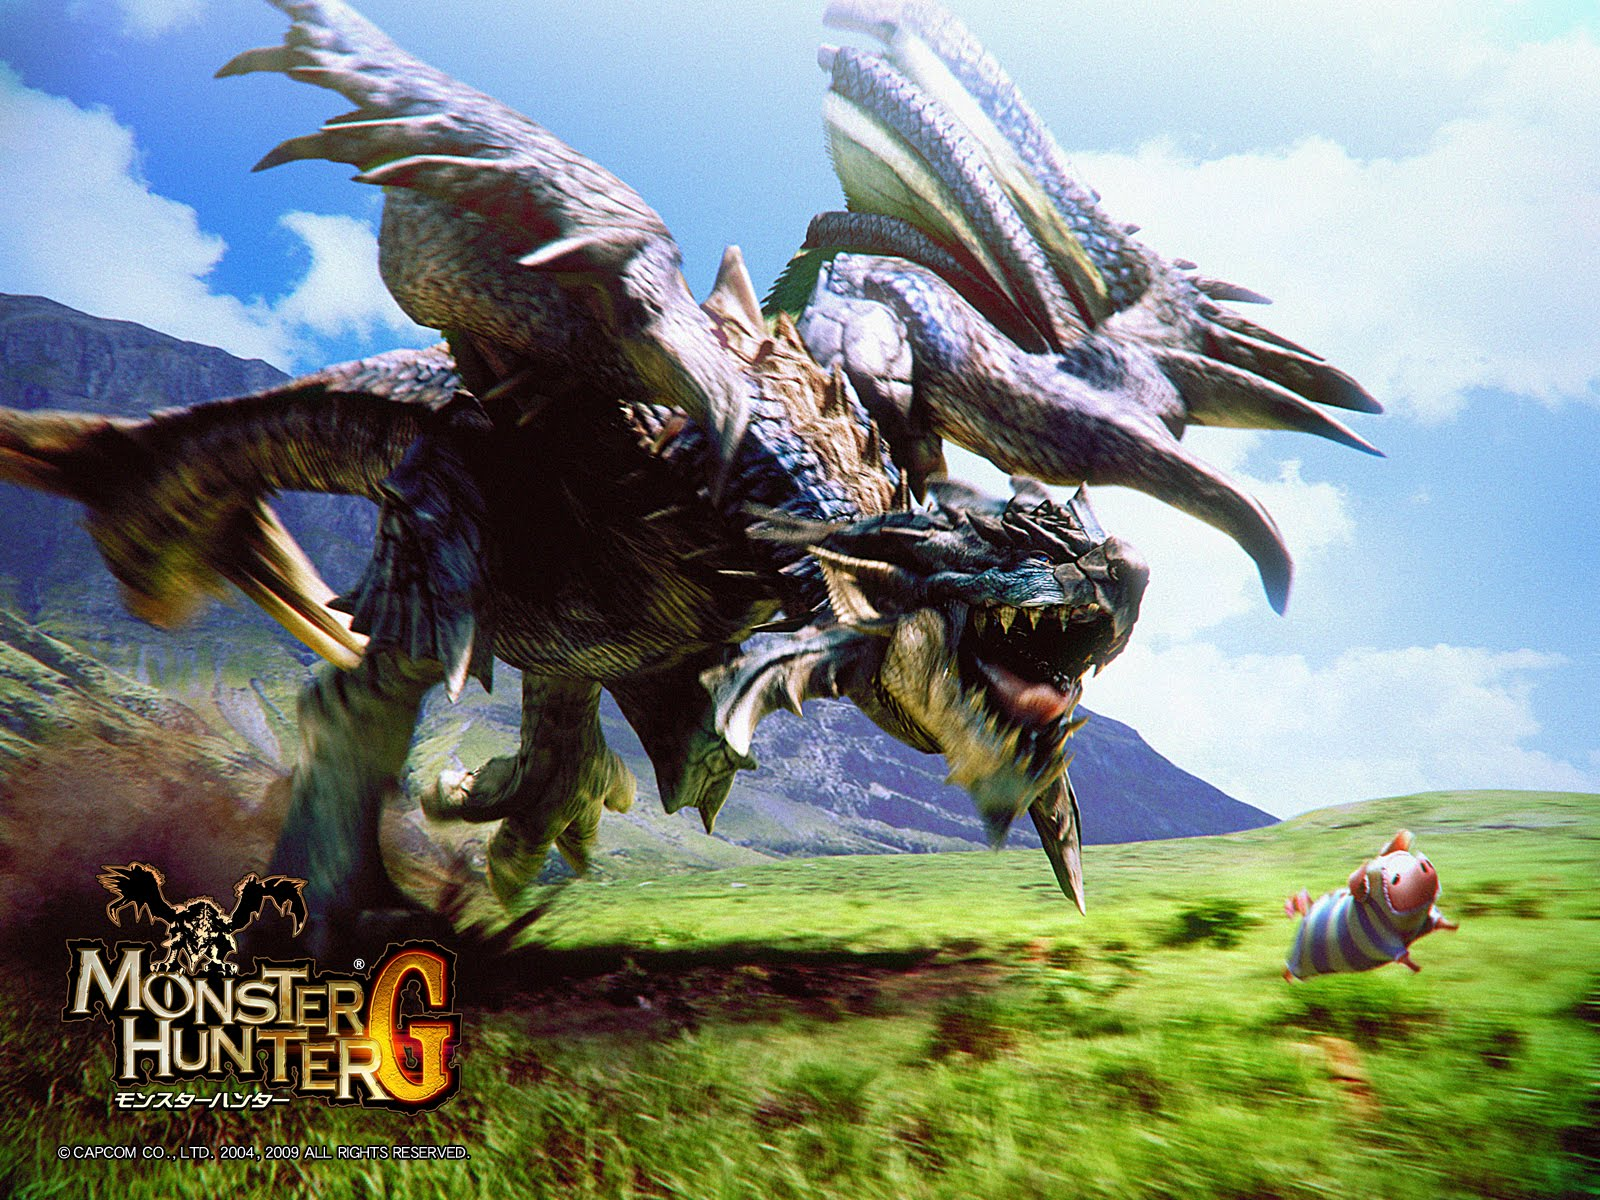 Monster Hunter HD & Widescreen Wallpaper 0.484825496747805